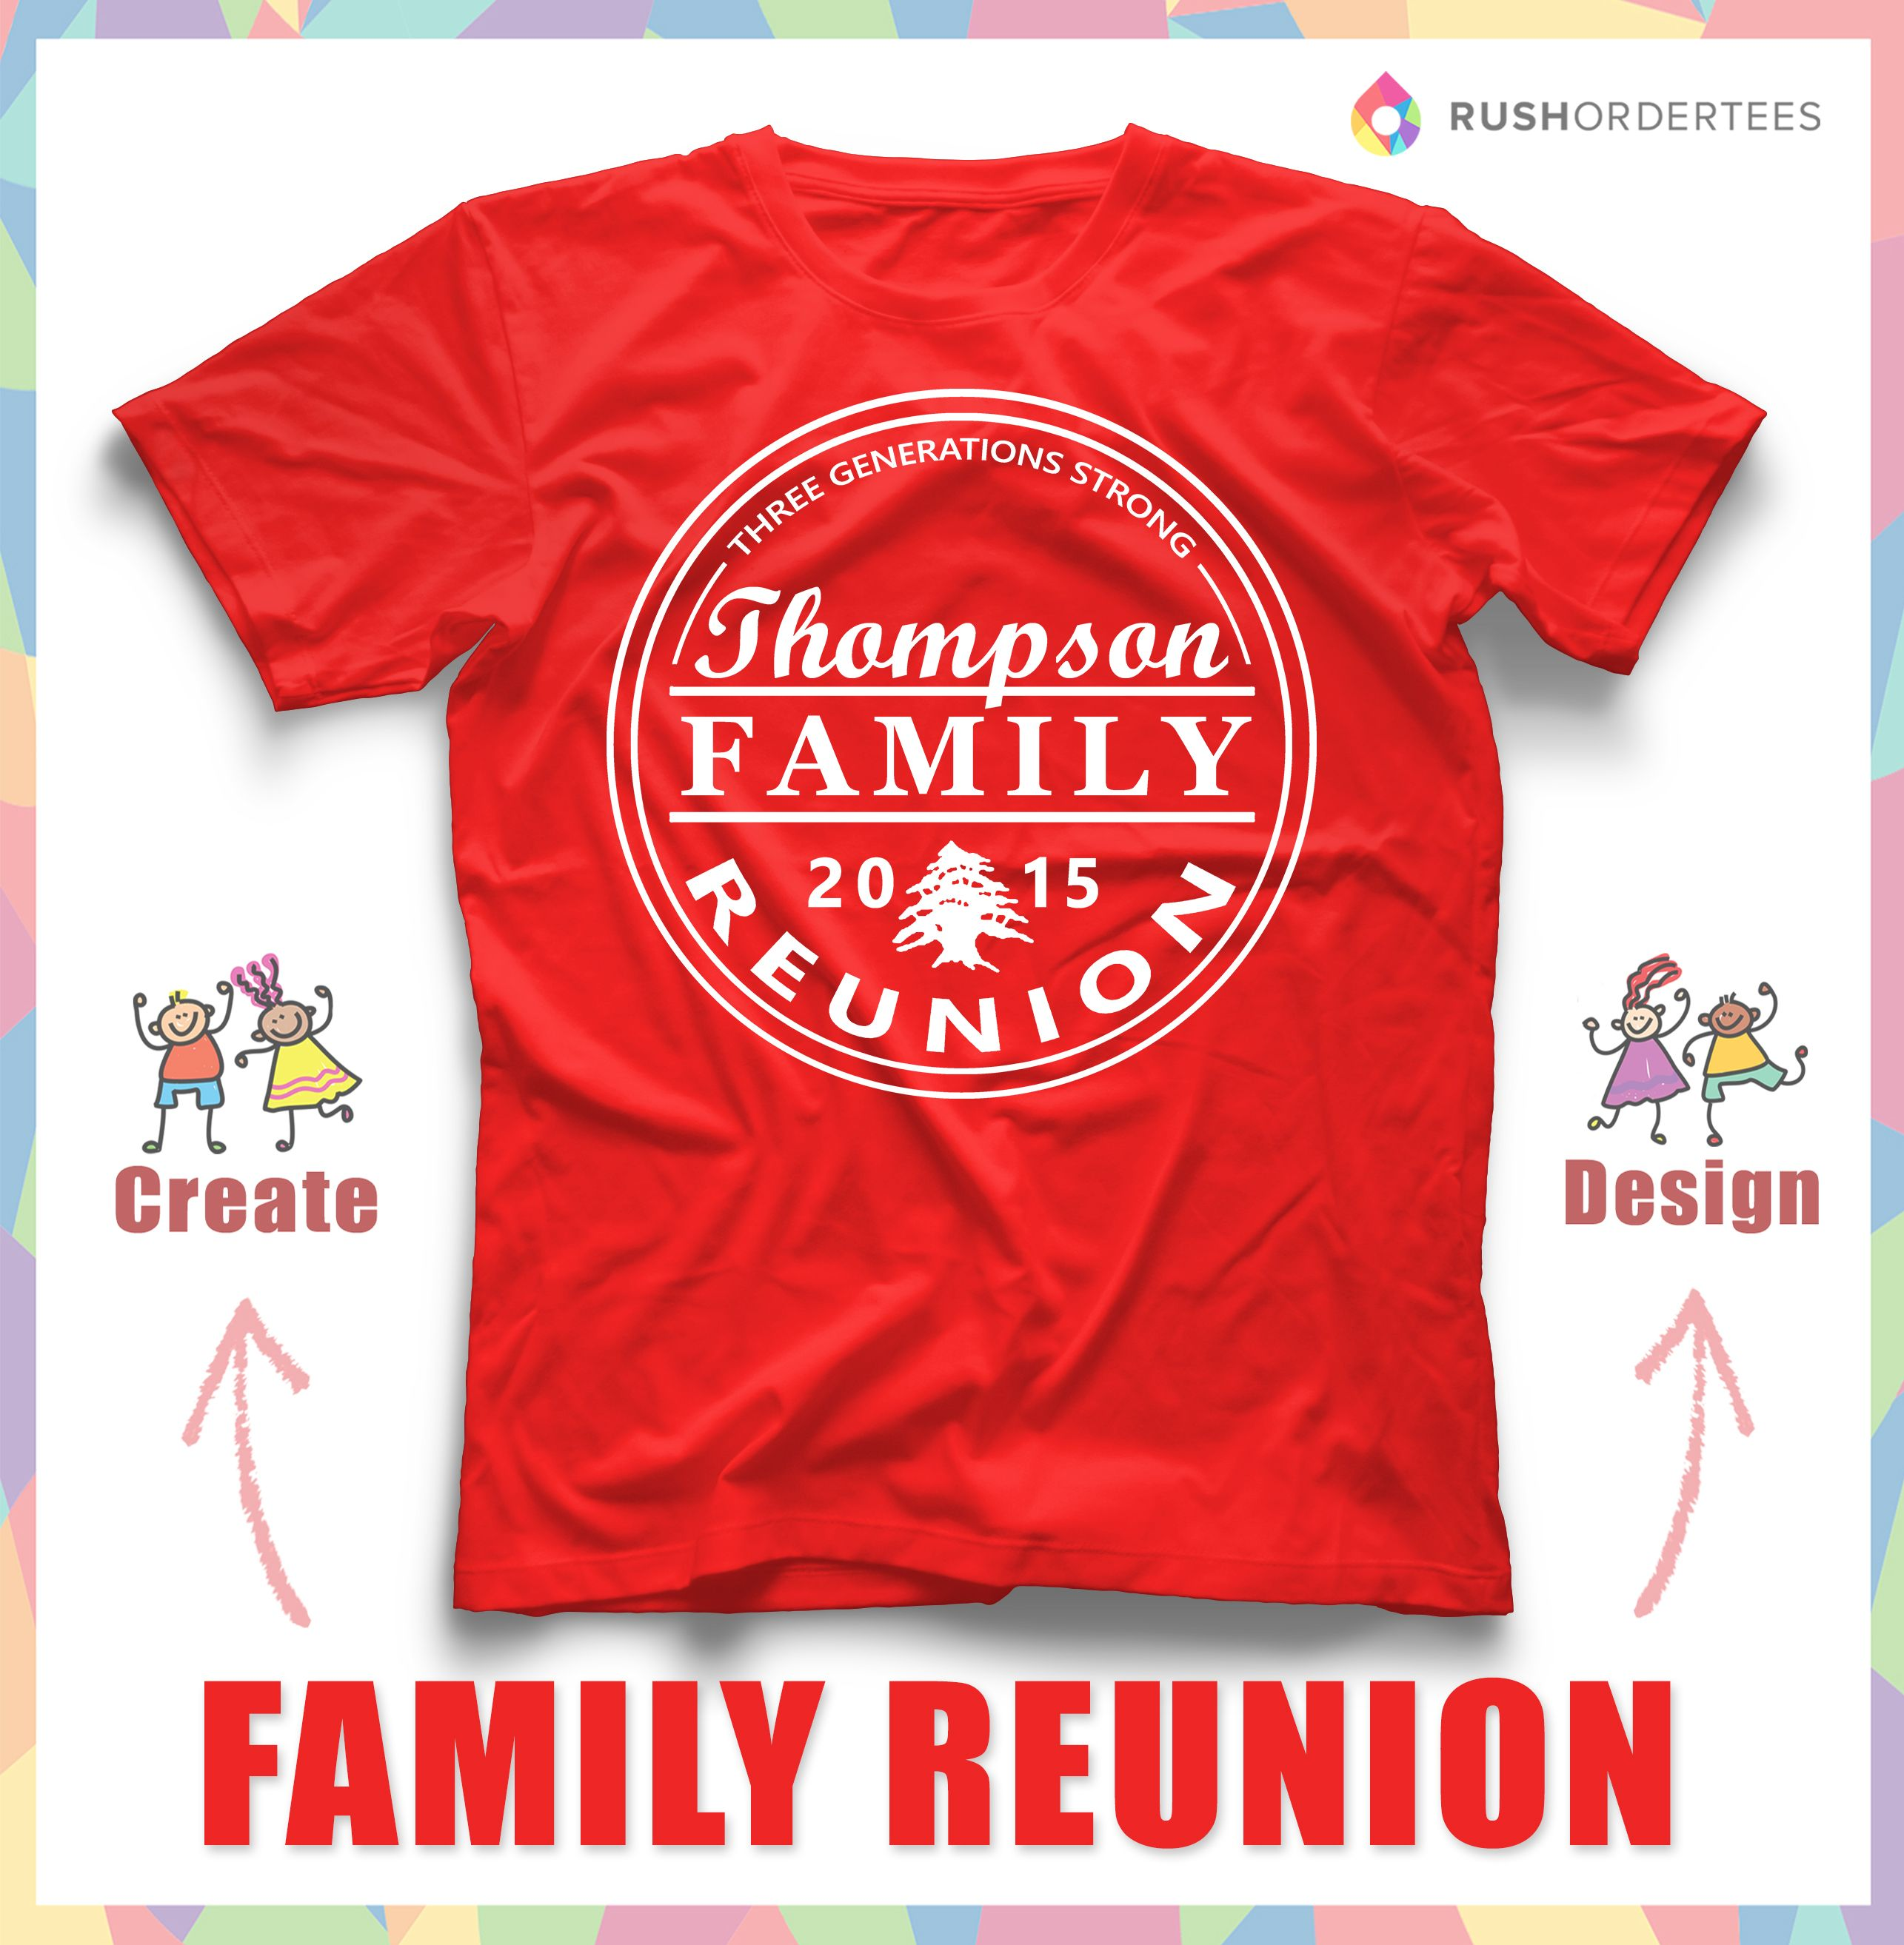 family reunion t shirt design ideas create a custom reunion shirt for your next